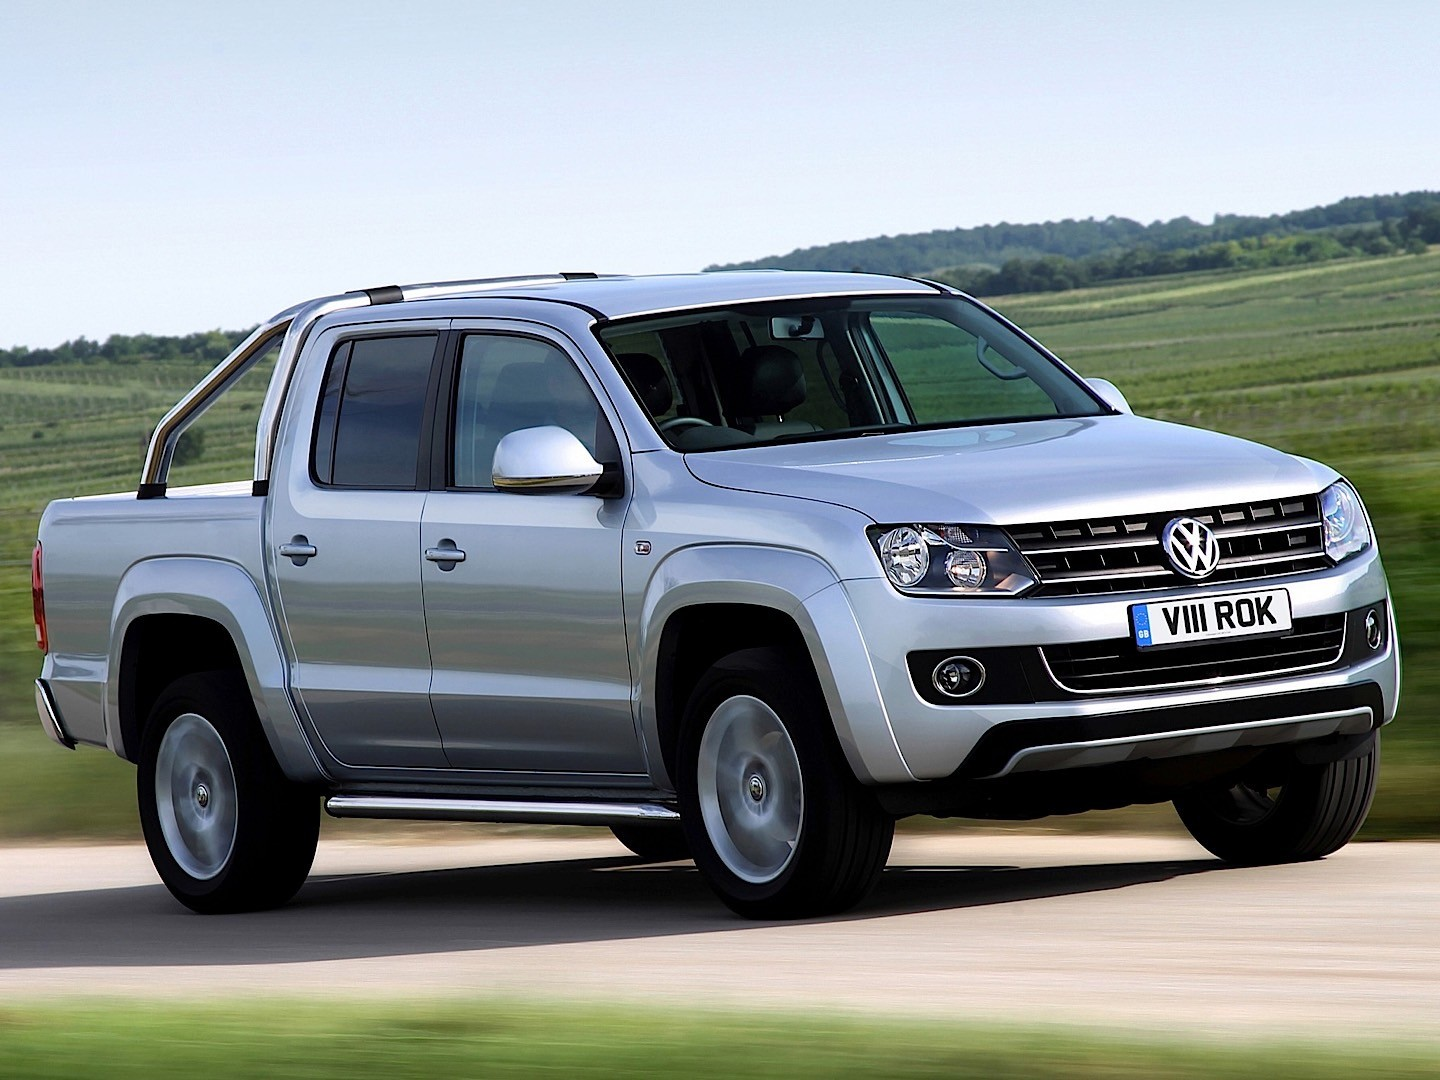 volkswagen amarok double cab specs 2009 2010 2011 2012 2013 2014 2015 2016 autoevolution. Black Bedroom Furniture Sets. Home Design Ideas